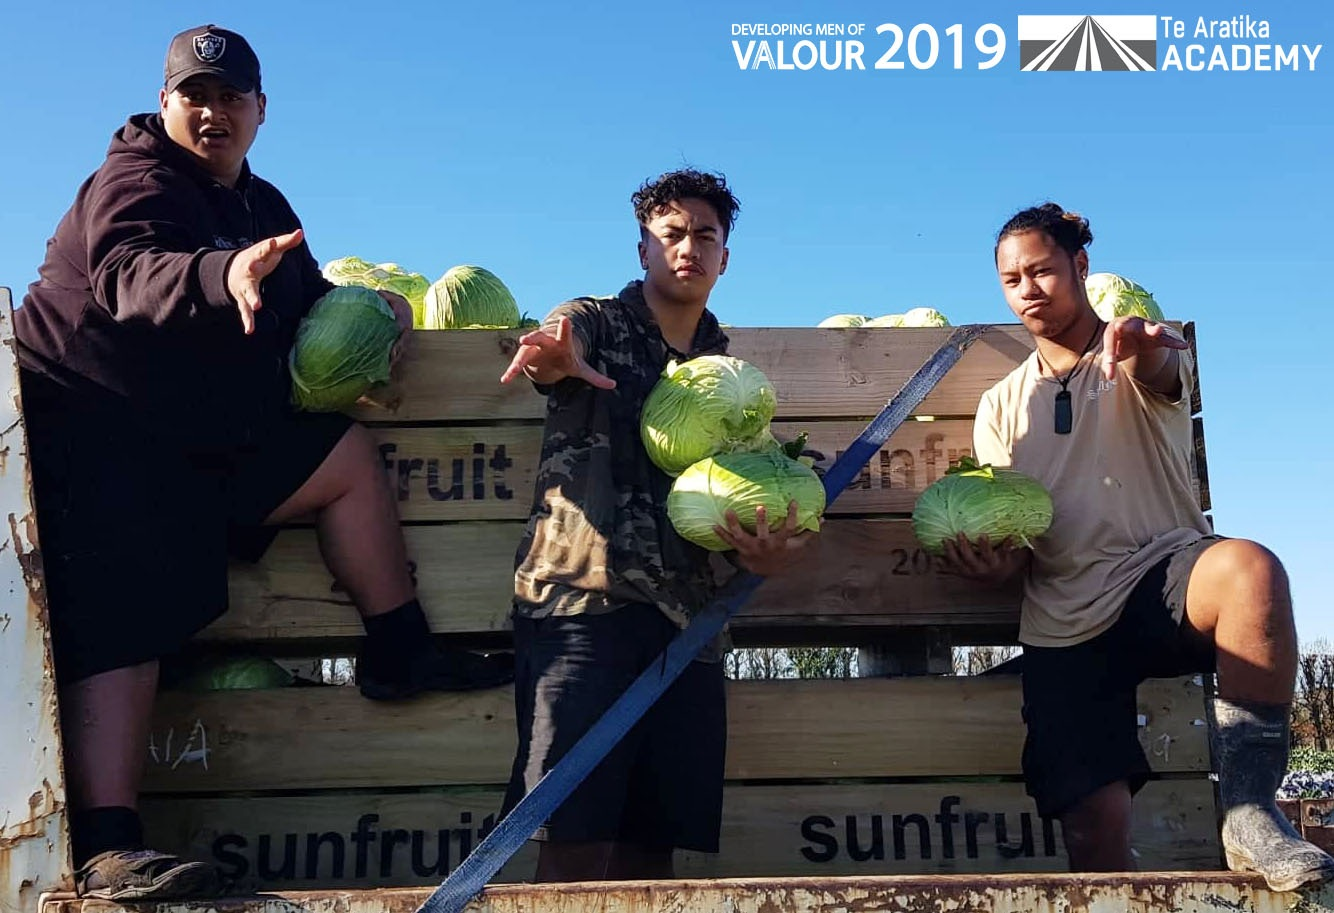 DMOV19 $1 Cabbage Fundraiser - We were privileged to be gifted a field full of cabbages to support our fundraising efforts. Our boys harvested, cleaned and sold out of the cabbages to earn funds for their travels.